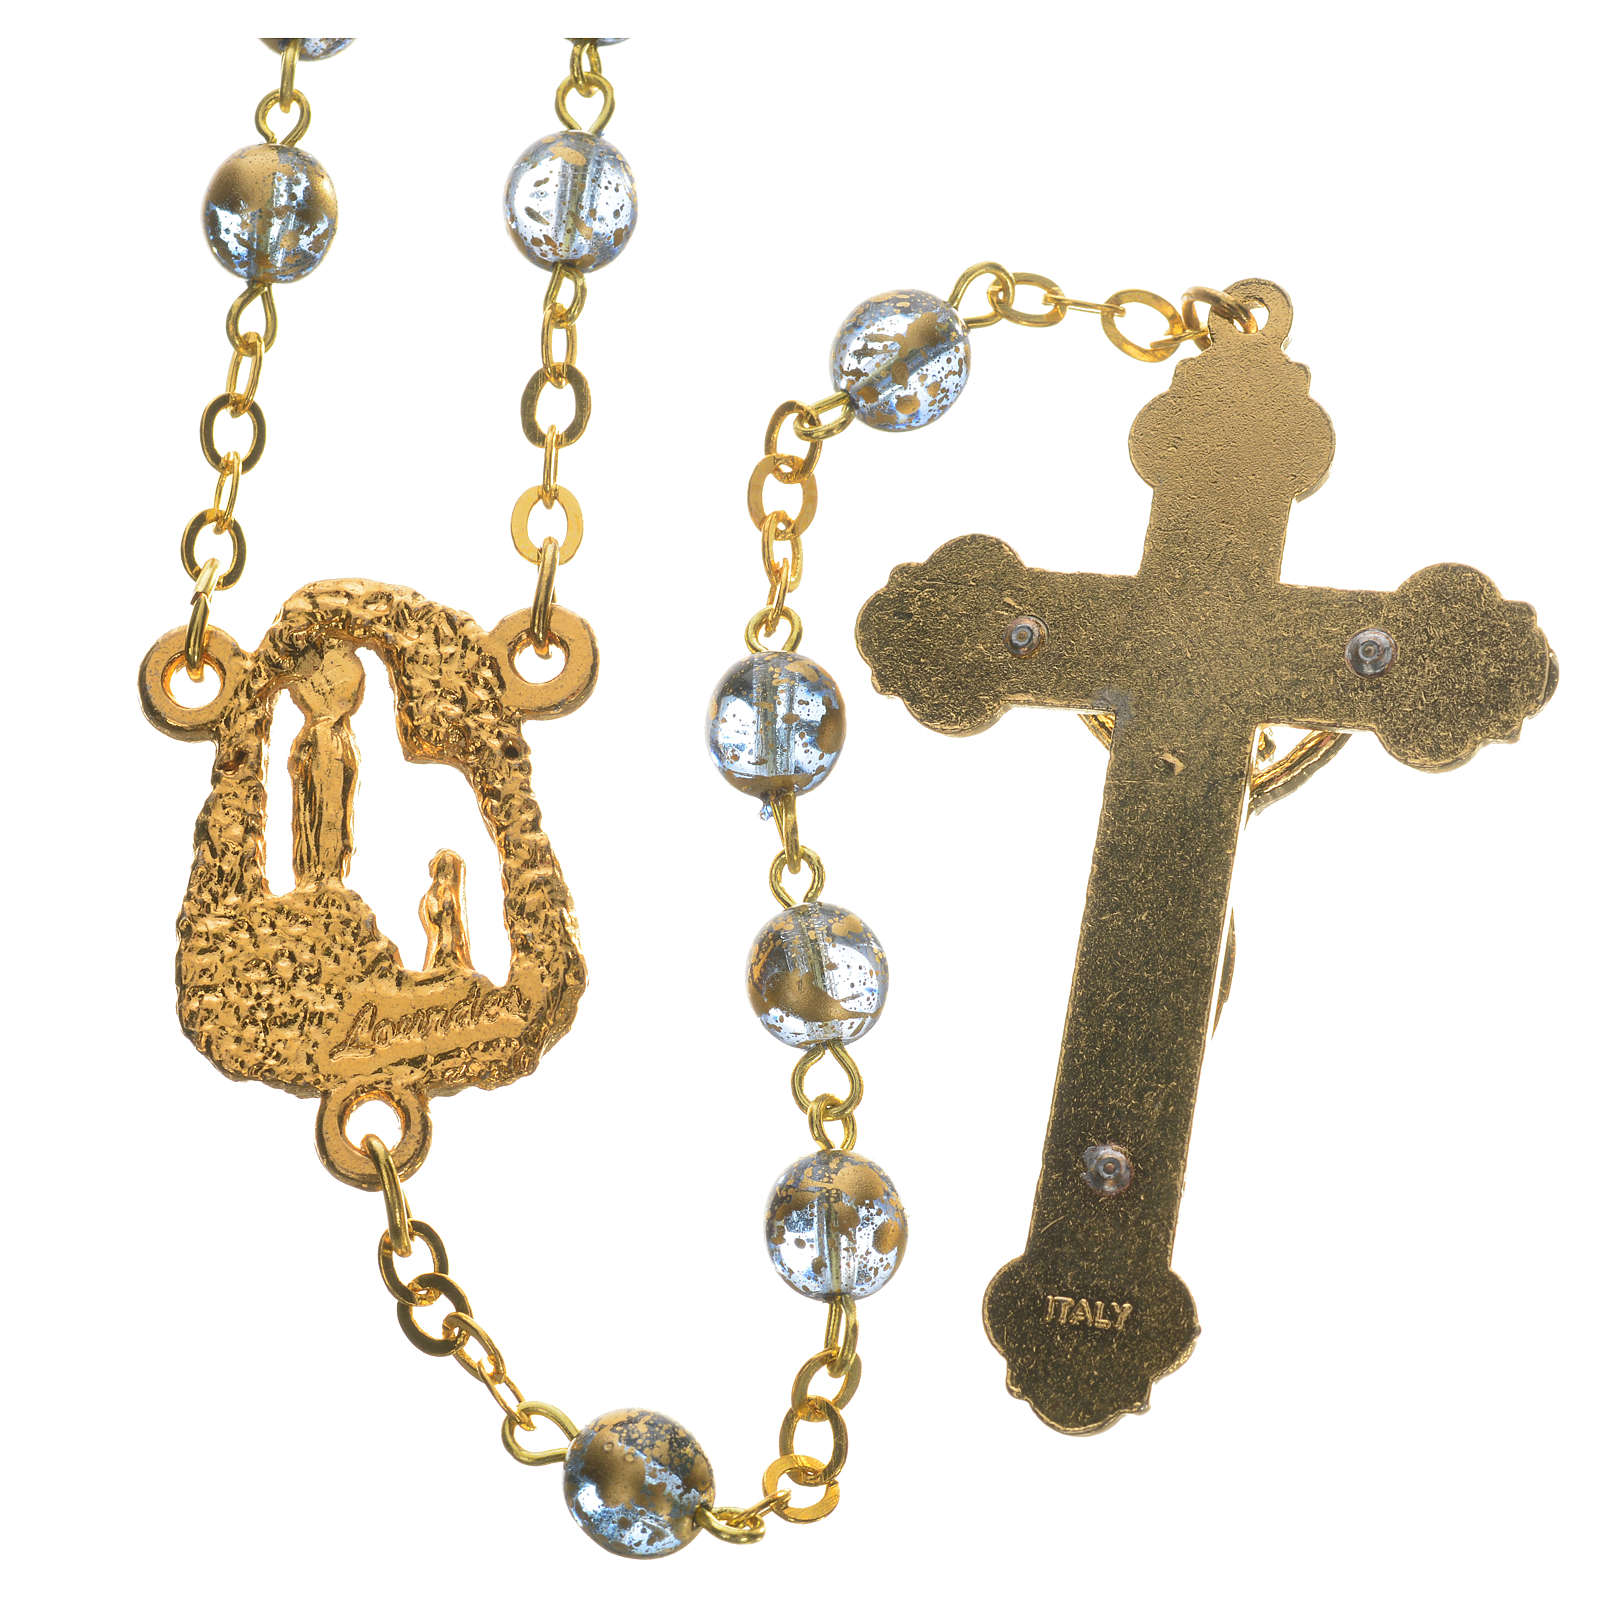 Ghirelli rosary with Lourdes grotto 6mm 4